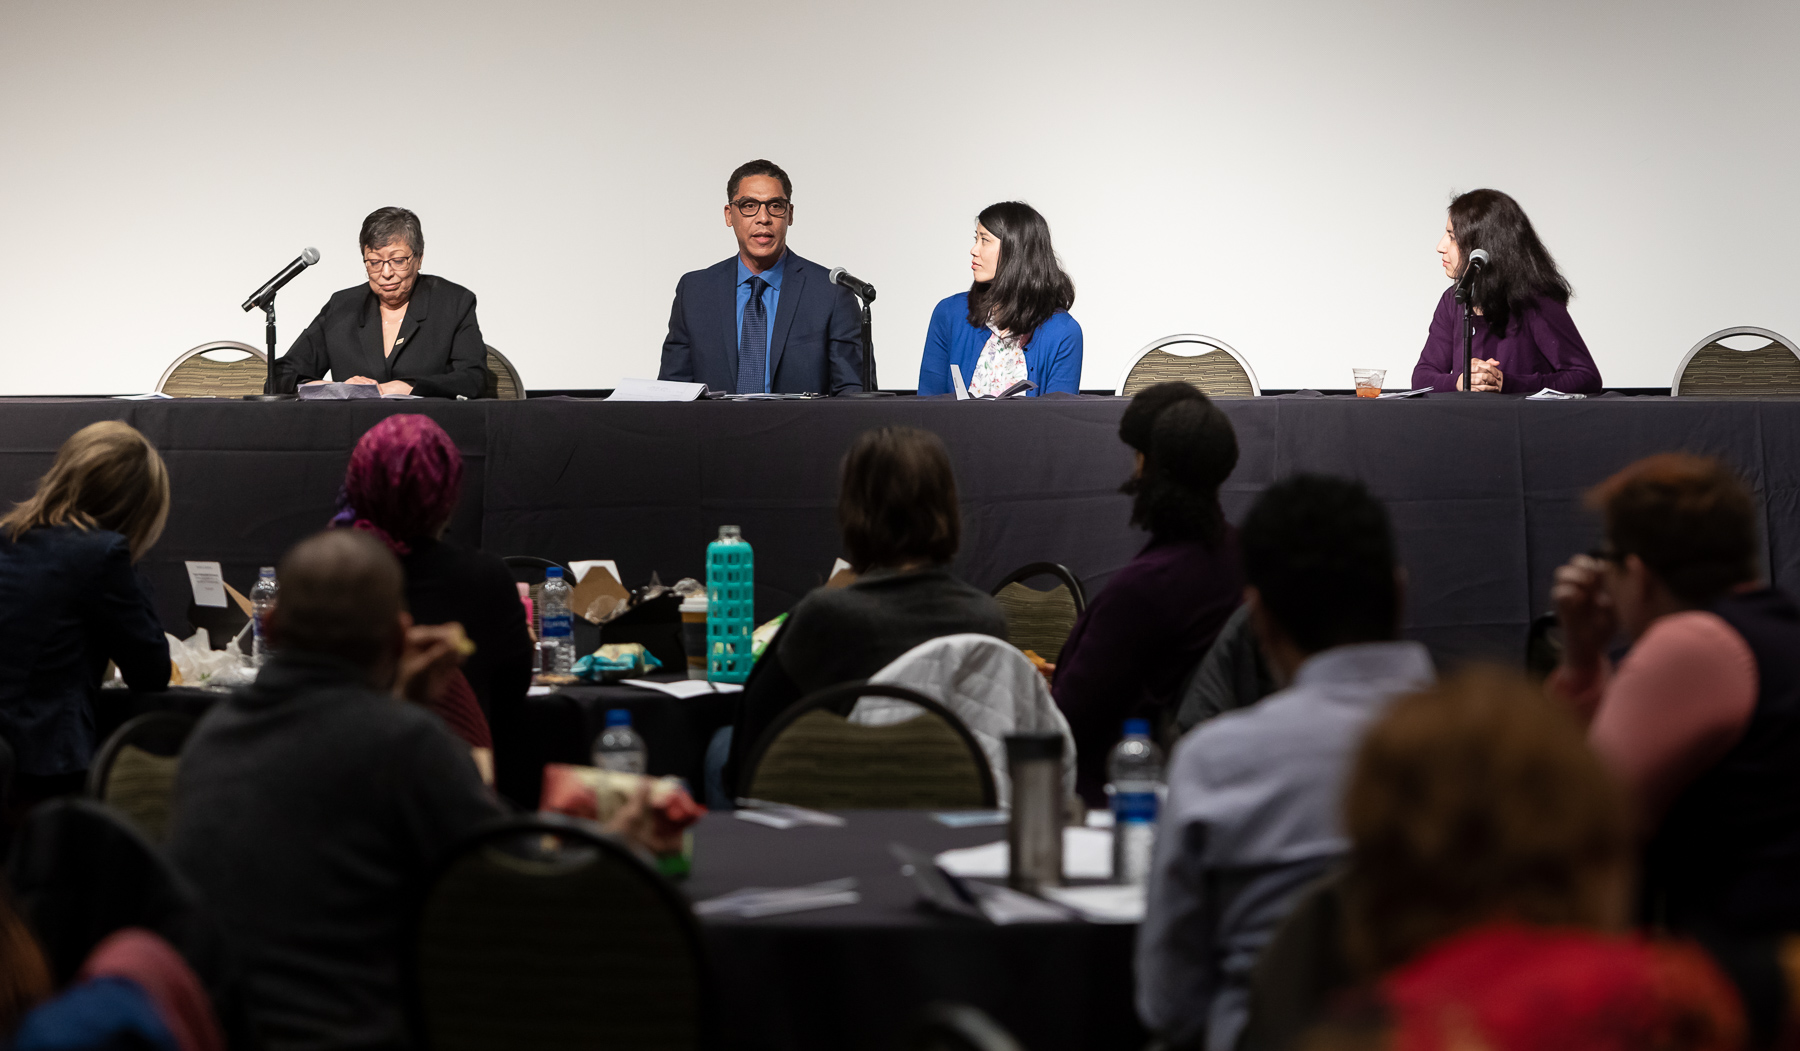 Following the screening and discussion, representatives from several of DePaul's employee resource groups including MERG, ELEVATE, LEAD and the DePaul Women's Network responded to questions about how they work to serve DePaul's diverse community. (DePaul University/Jeff Carrion)​​​​